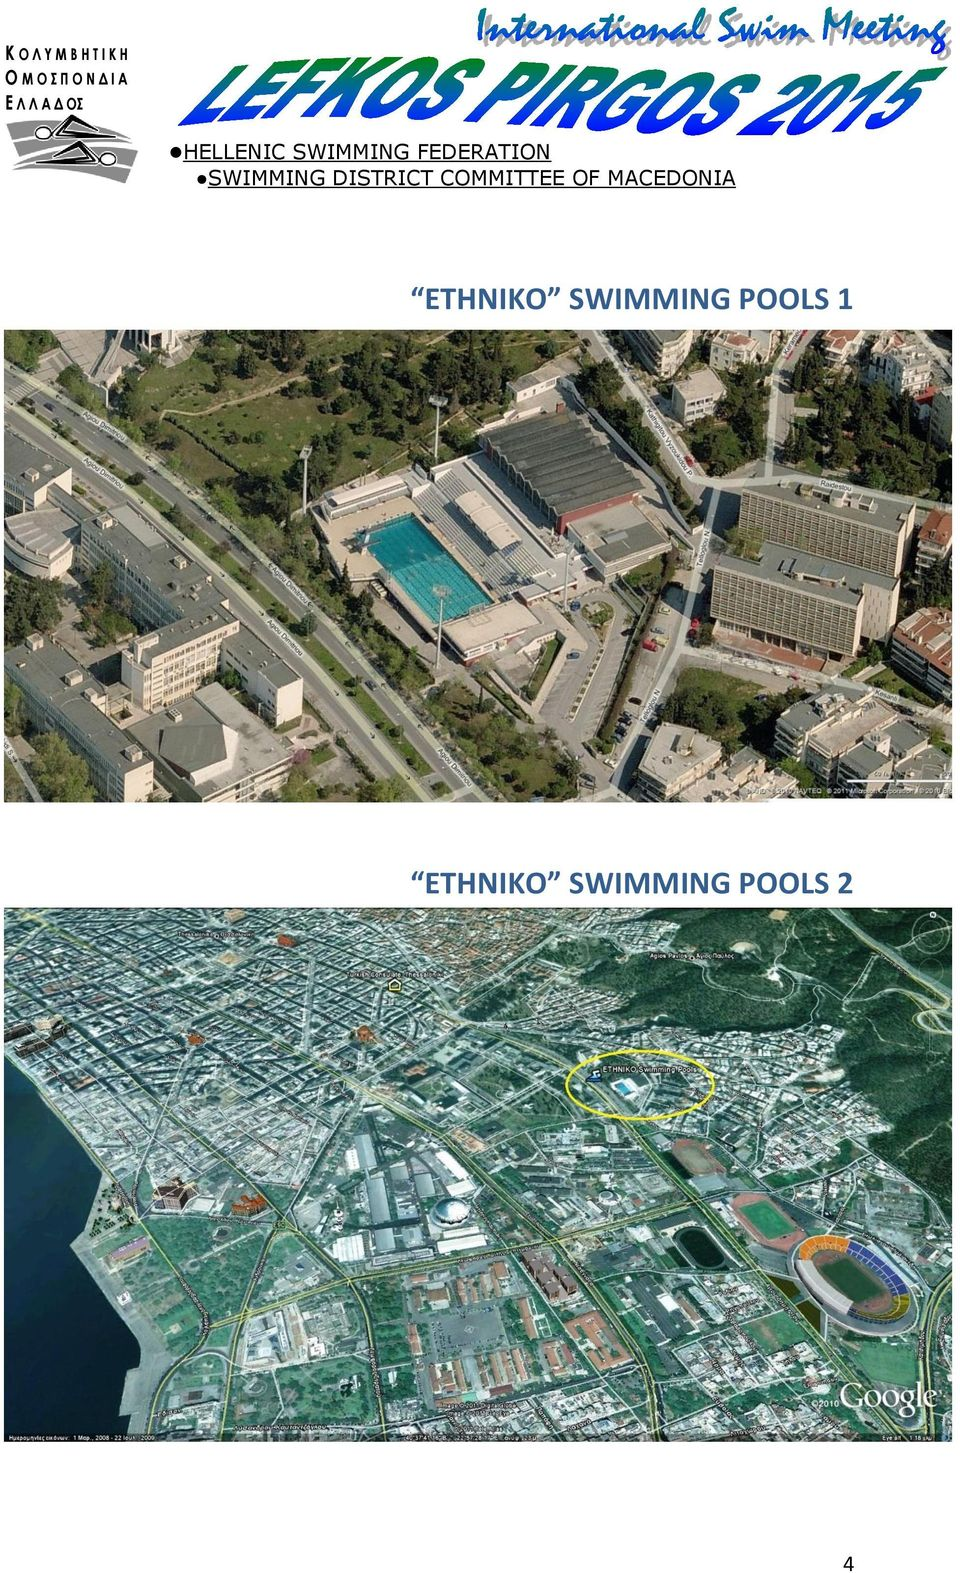 SWIMMING DISTRICT COMMITTEE OF MACEDONIA